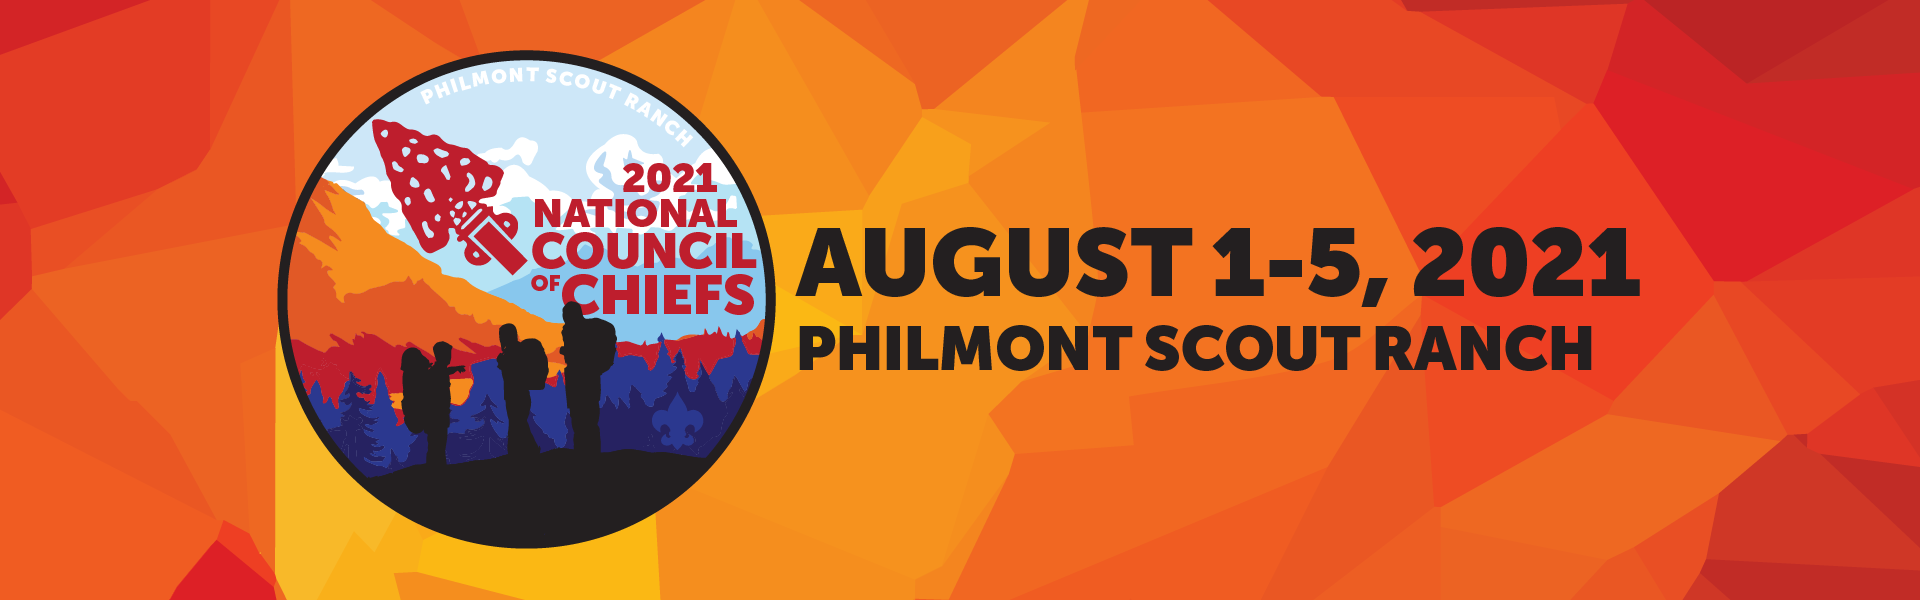 National Council of Chiefs, August 1-5, 2021, Philmont Scout Ranch